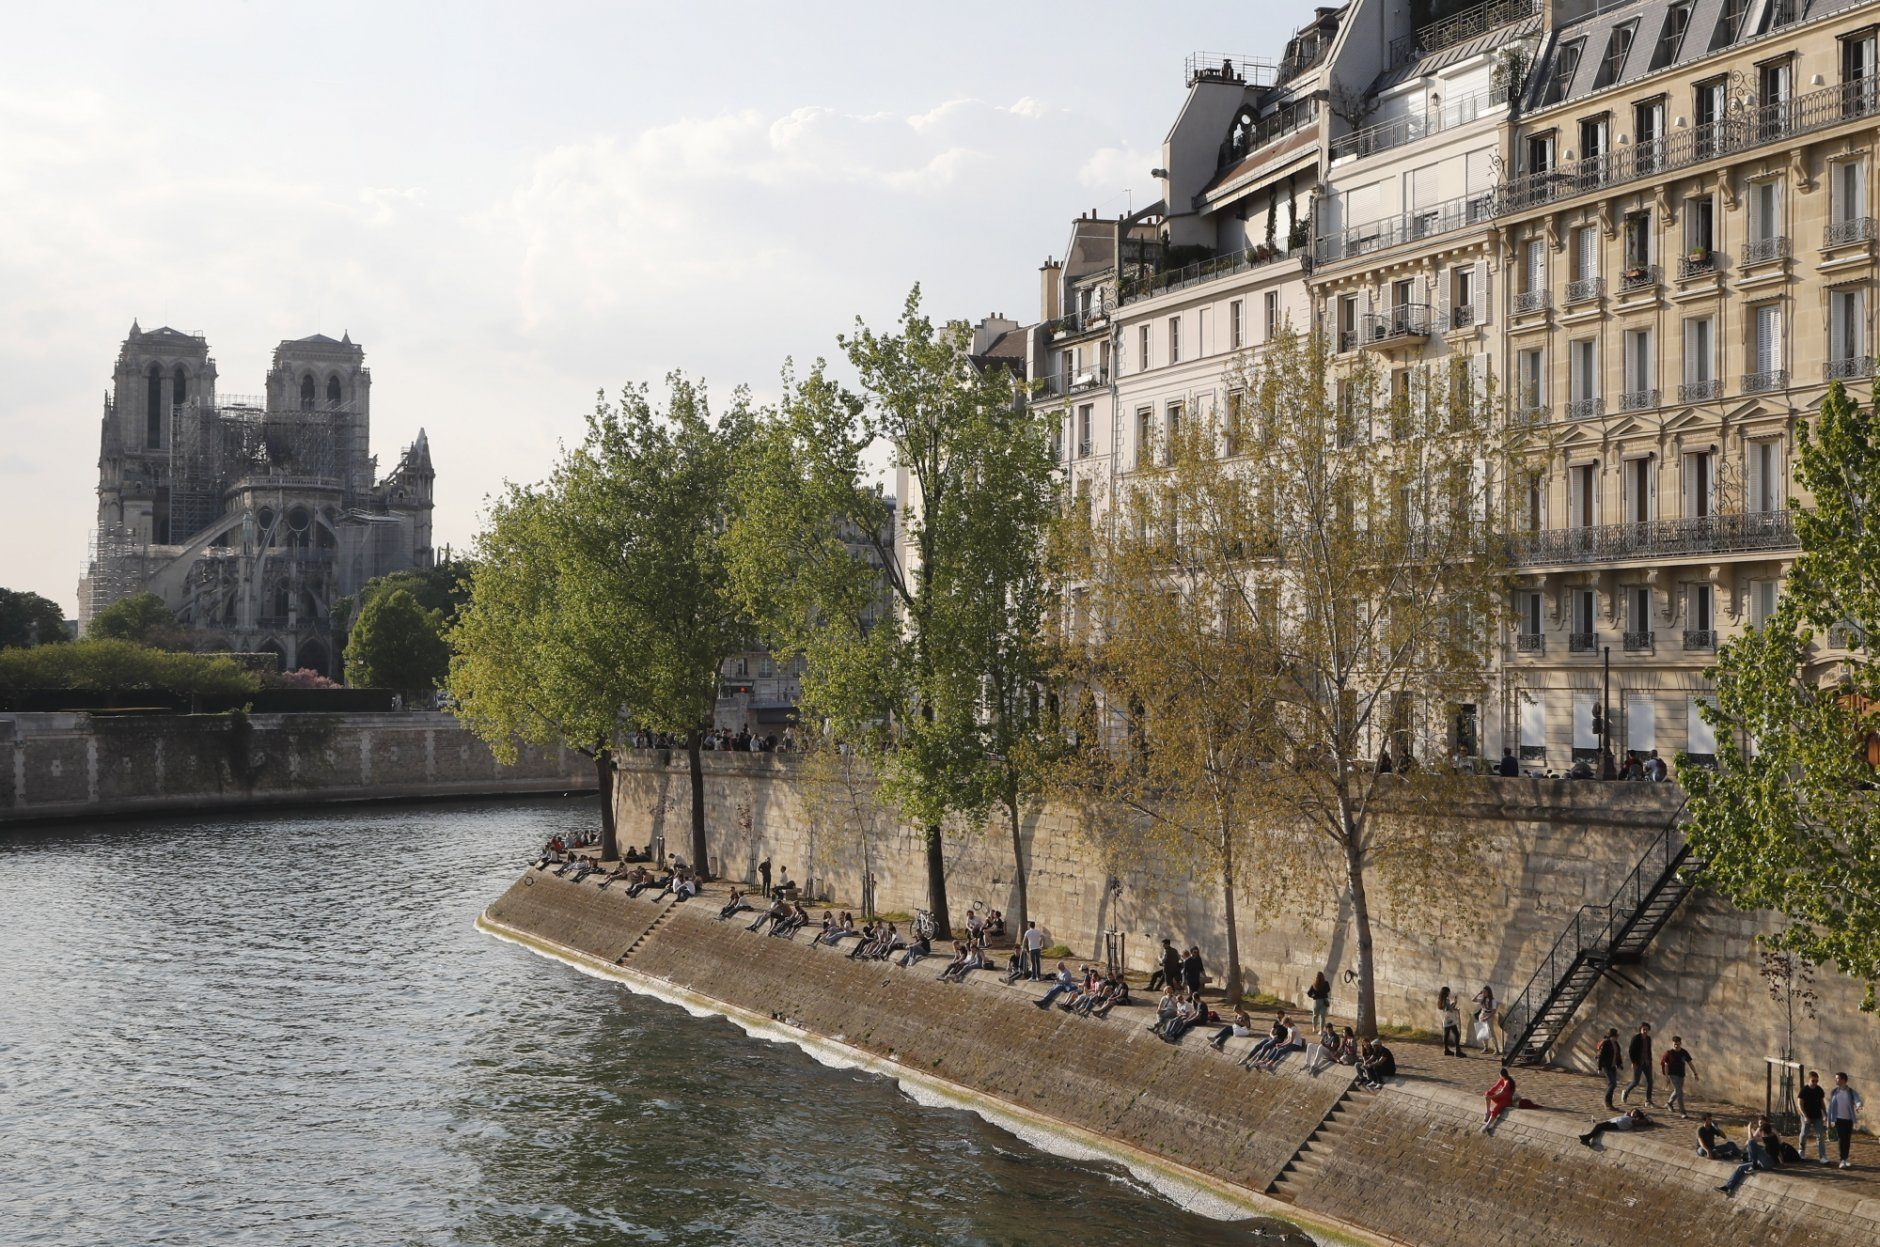 People enjoy the sun next the Notre Dame Cathedral along the Seine river in Paris, Friday, April 19, 2019. Rebuilding Notre Dame, the 800-year-old Paris cathedral devastated by fire this week, will cost billions of dollars as architects, historians and artisans work to preserve the medieval landmark. (AP Photo/Michel Euler)